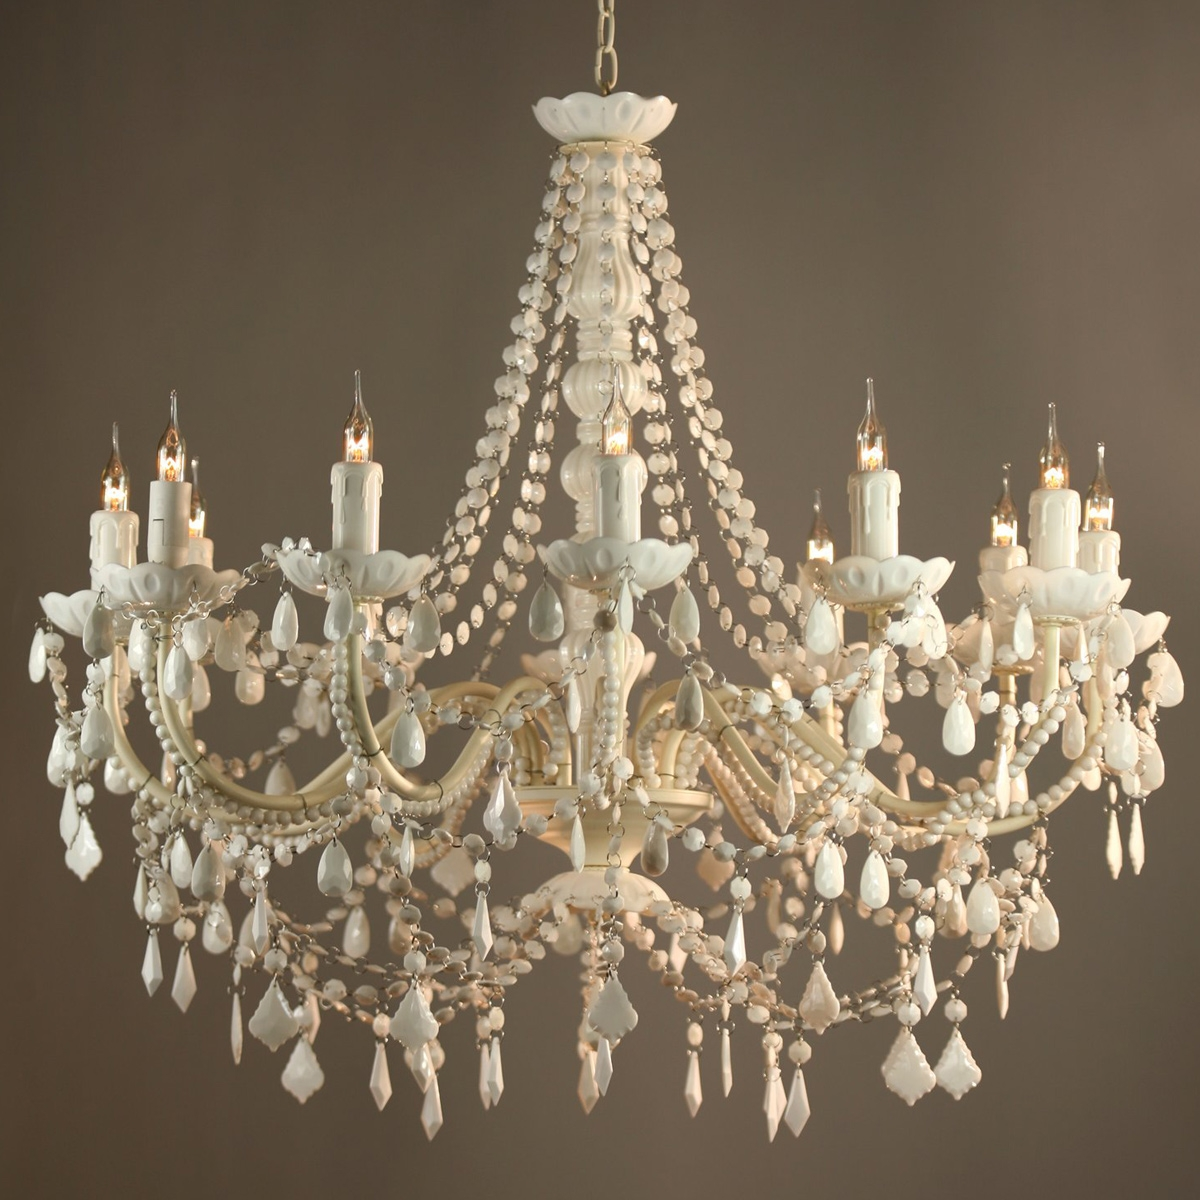 Antique White Chandelier For Antique Looking Chandeliers (#4 of 12)